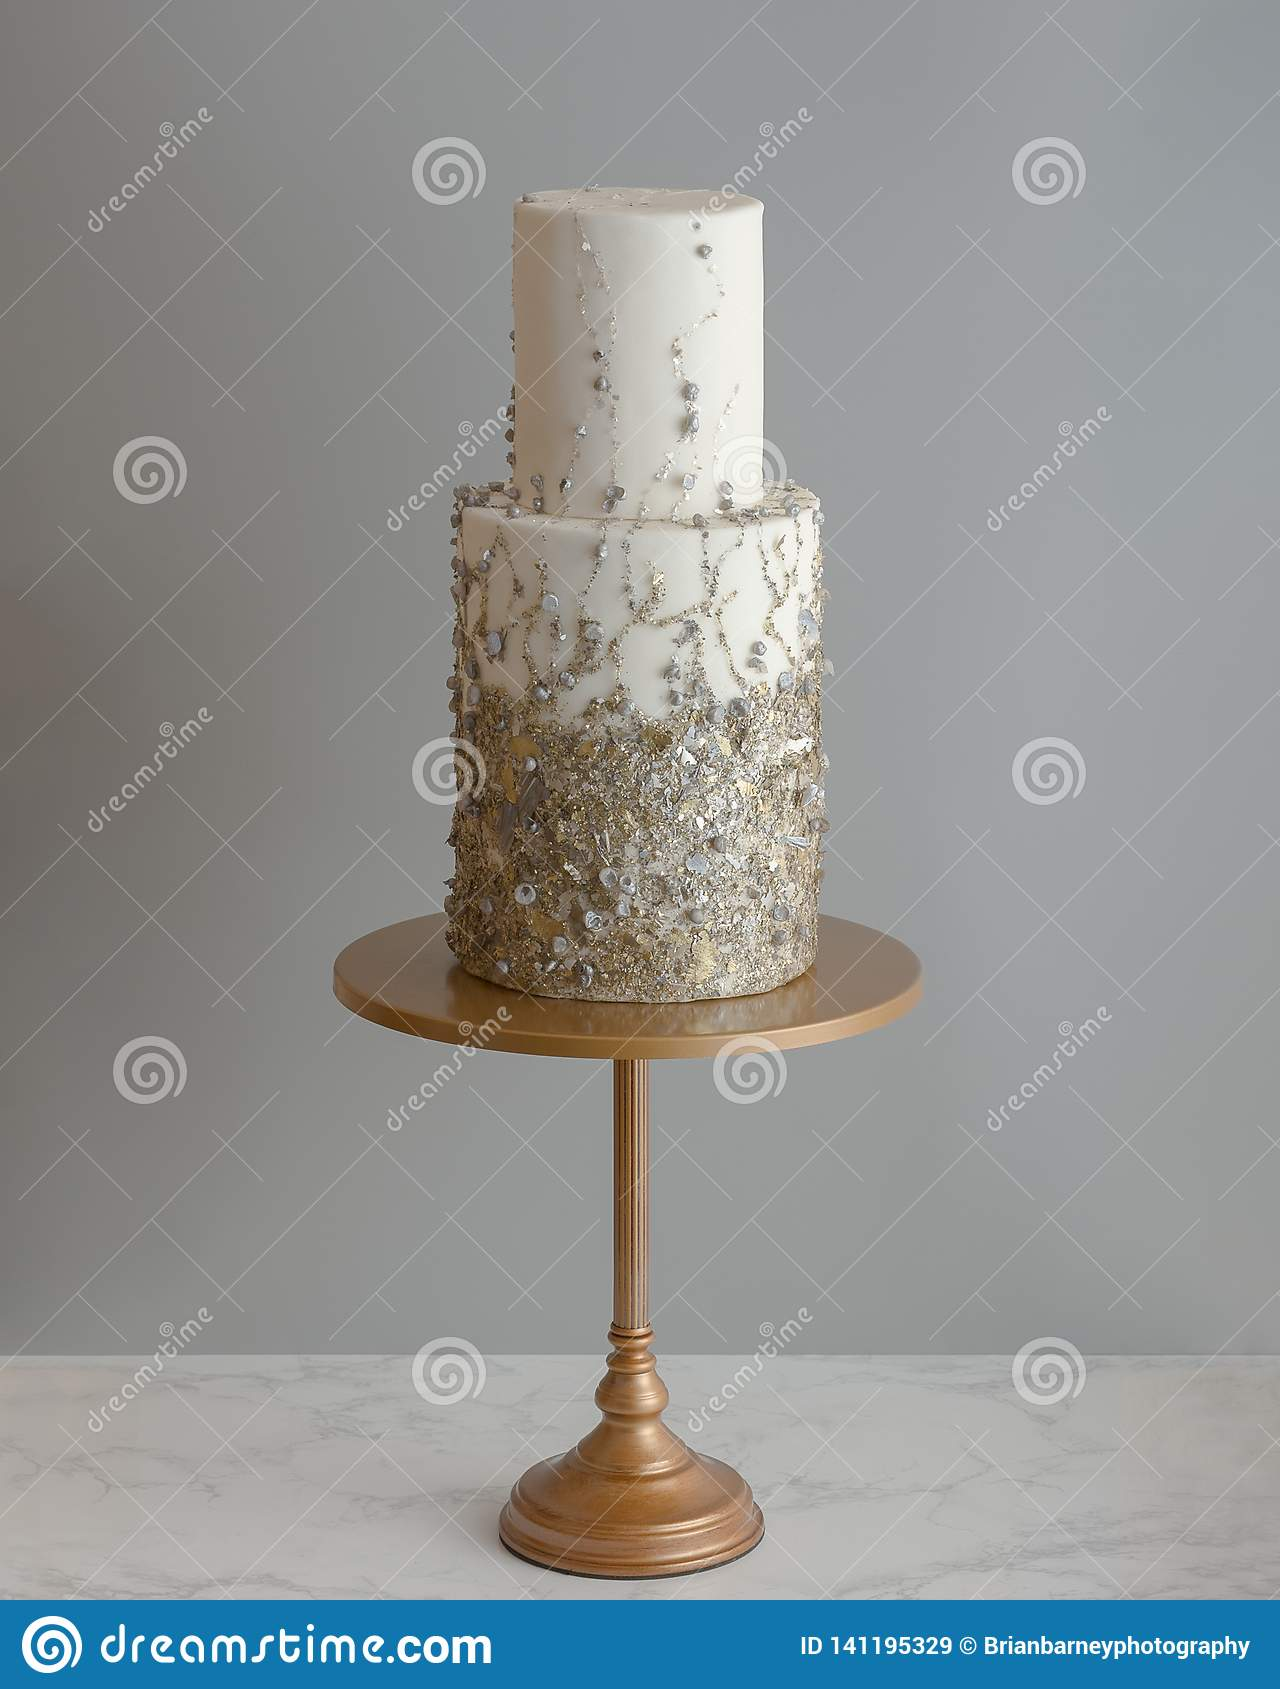 Trendy Tall 2 Tier Wedding Cake With Metallic Texture Stock Image Image Of Bridal Marble 141195329